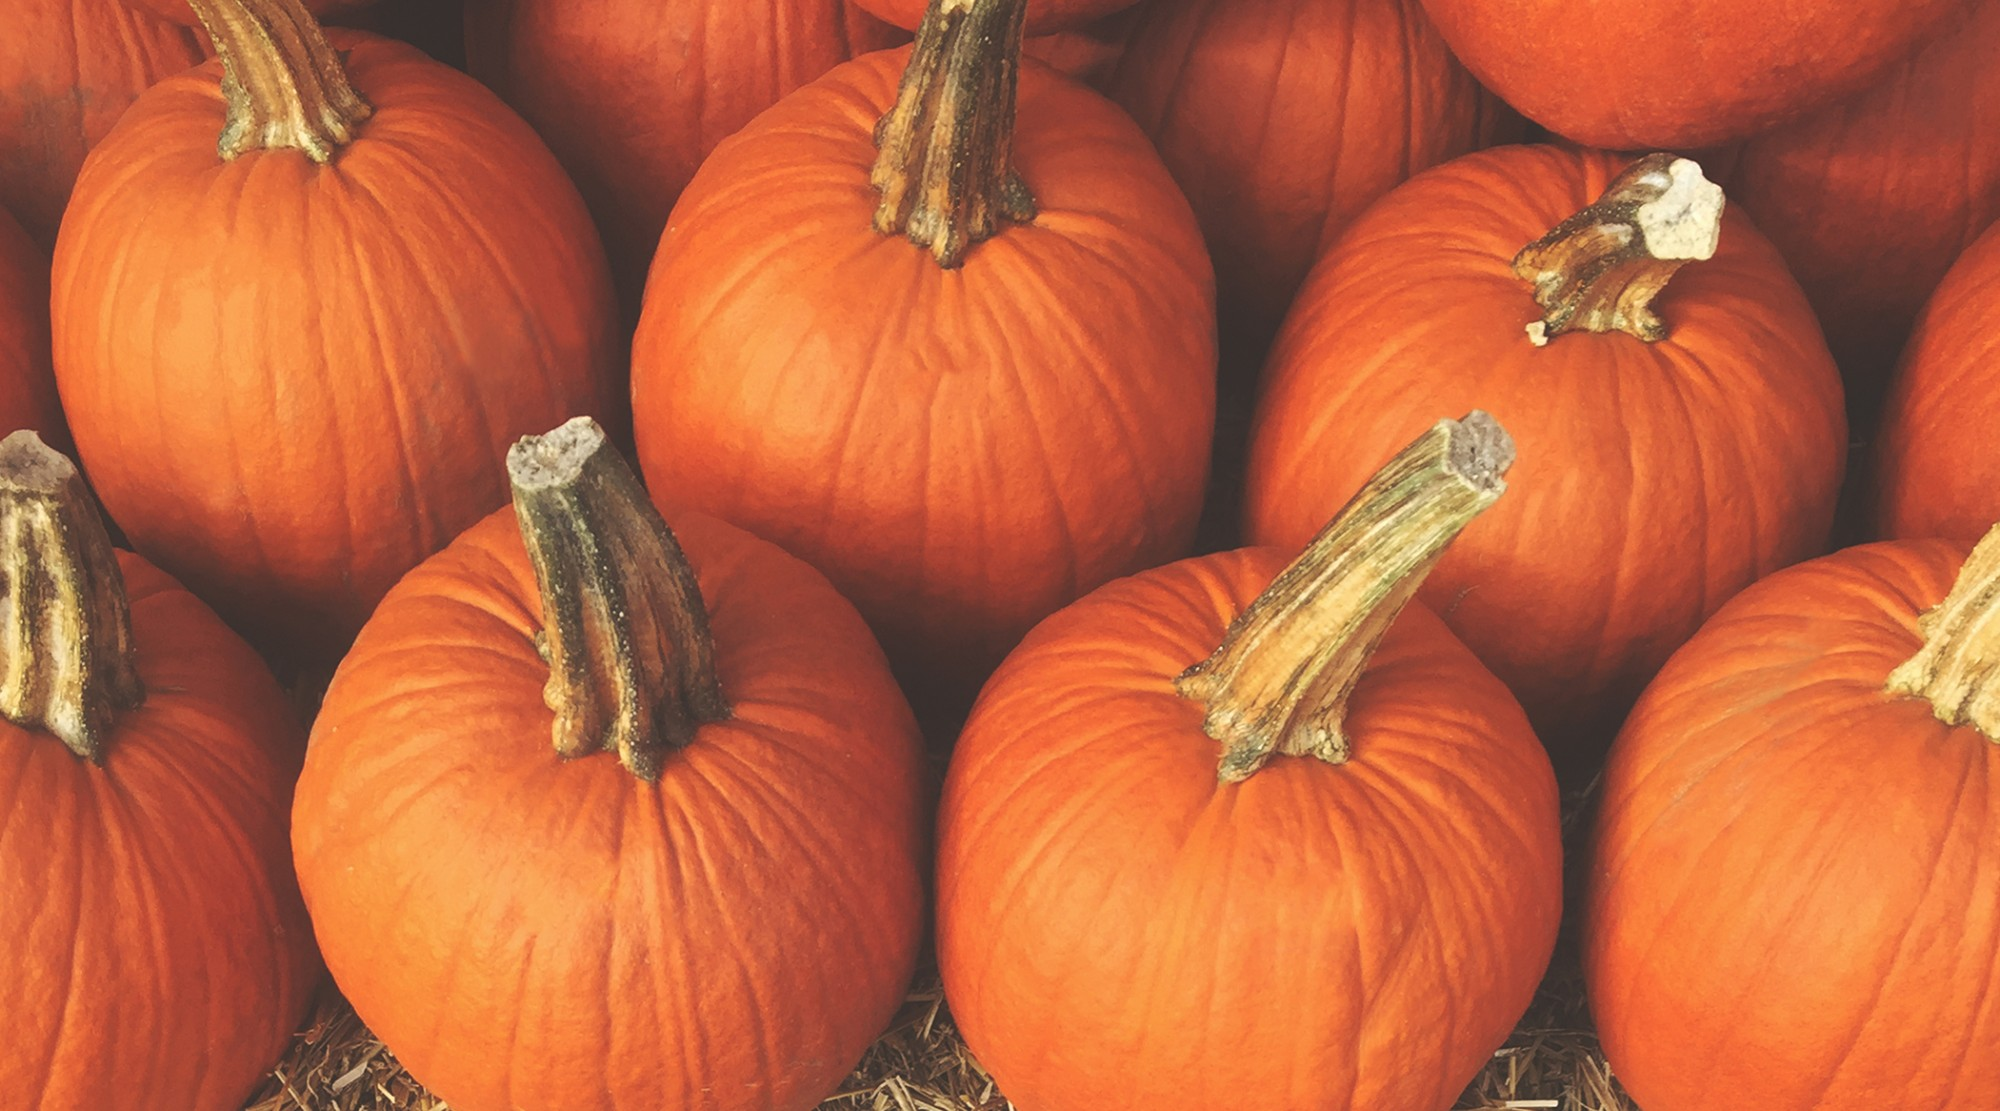 NOVEMBER 17, 2018 - Of mastodons and man... and pumpkinS: HOW PUMPKINS WENT FROM INEDIBLE TO COMMONPLACE (AUDIO)